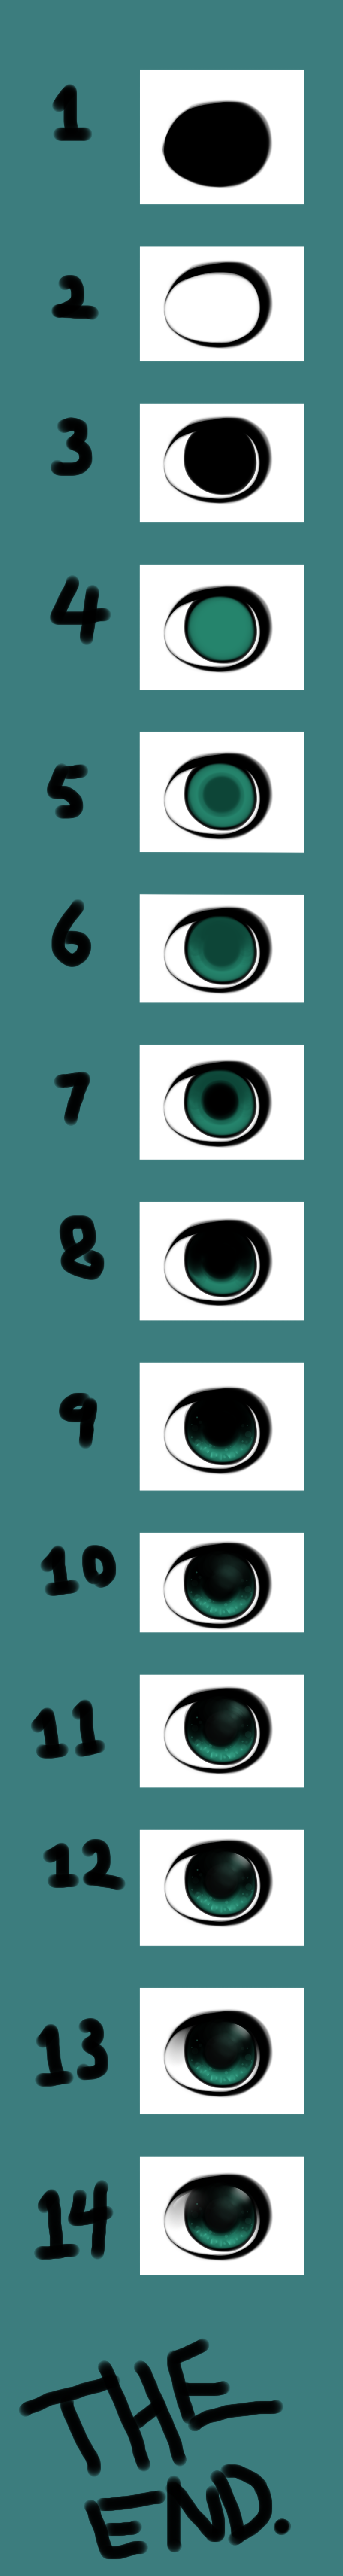 Basic Eye step by step by DiniZee